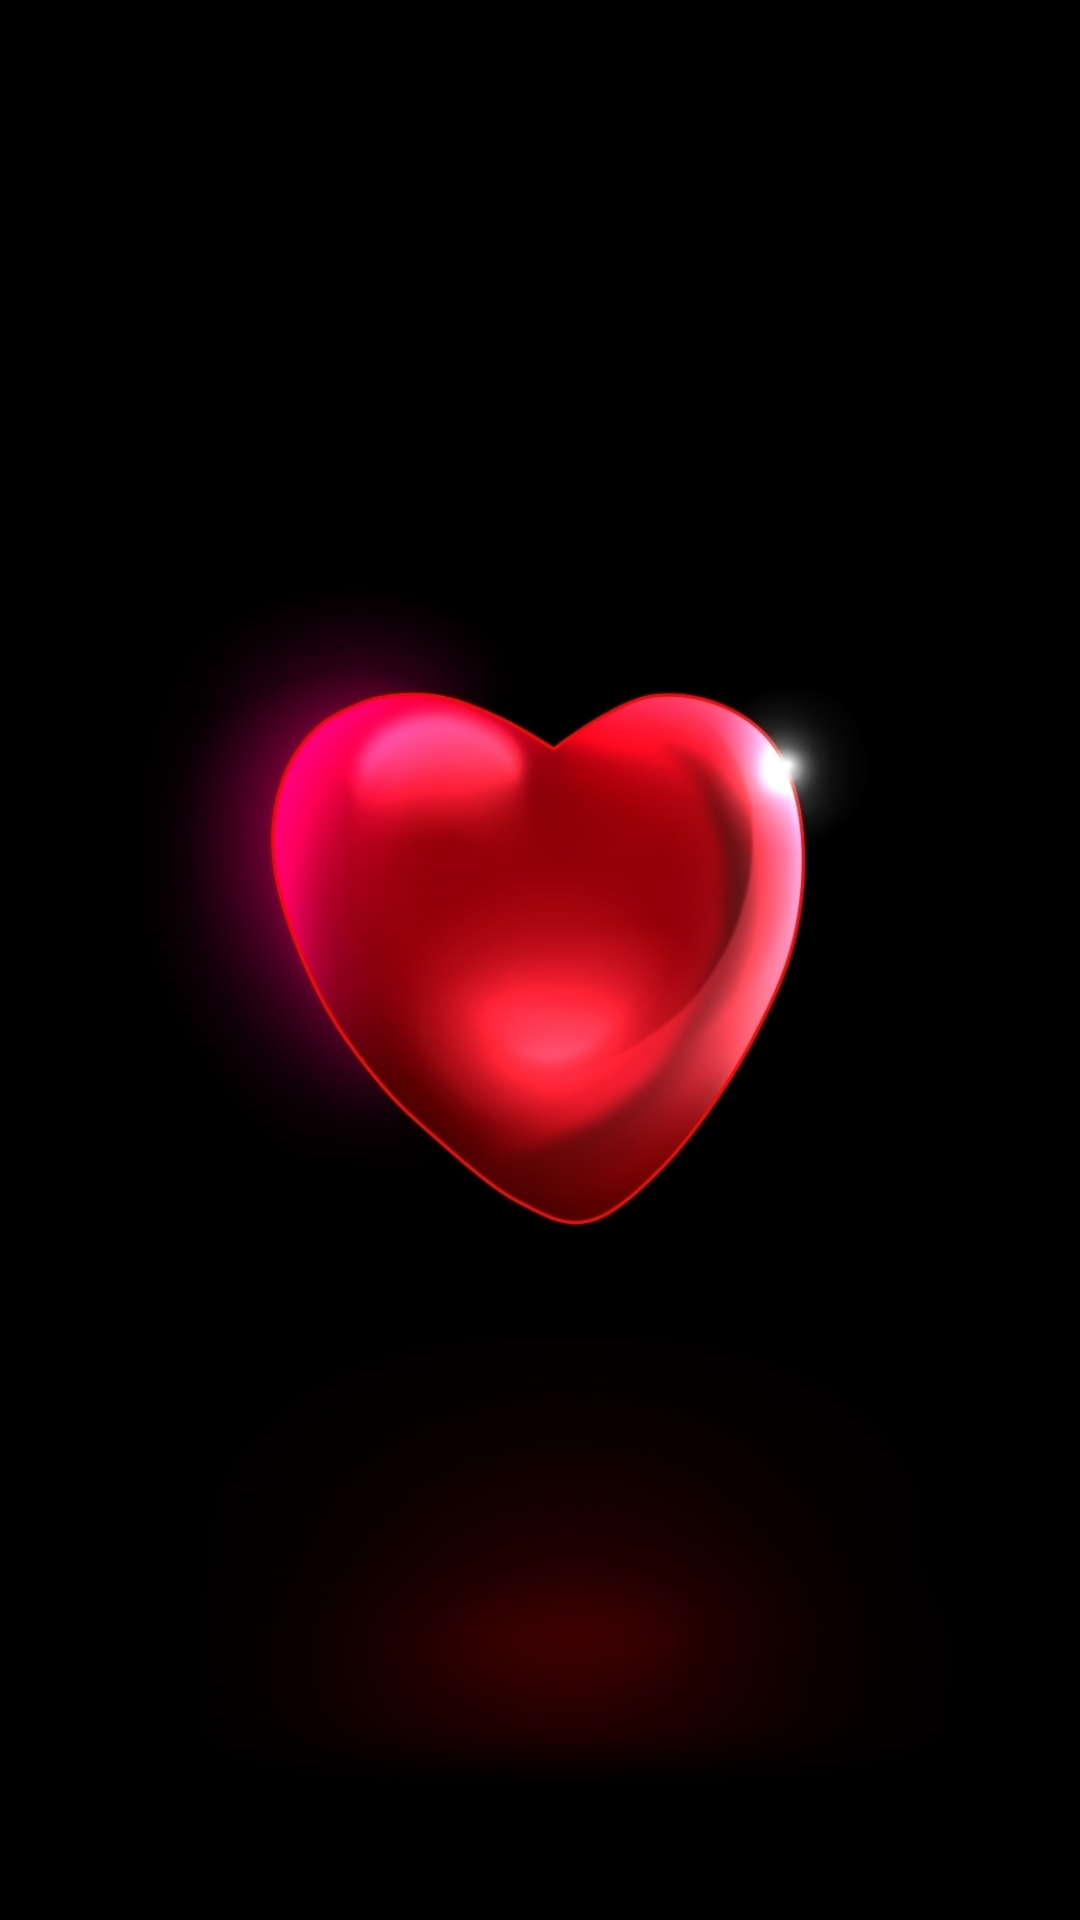 Download 1080x1920 wallpaper minimal red heart 3d samsung galaxy s4 s5 note sony xperia z - 3d wallpaper for note 8 ...